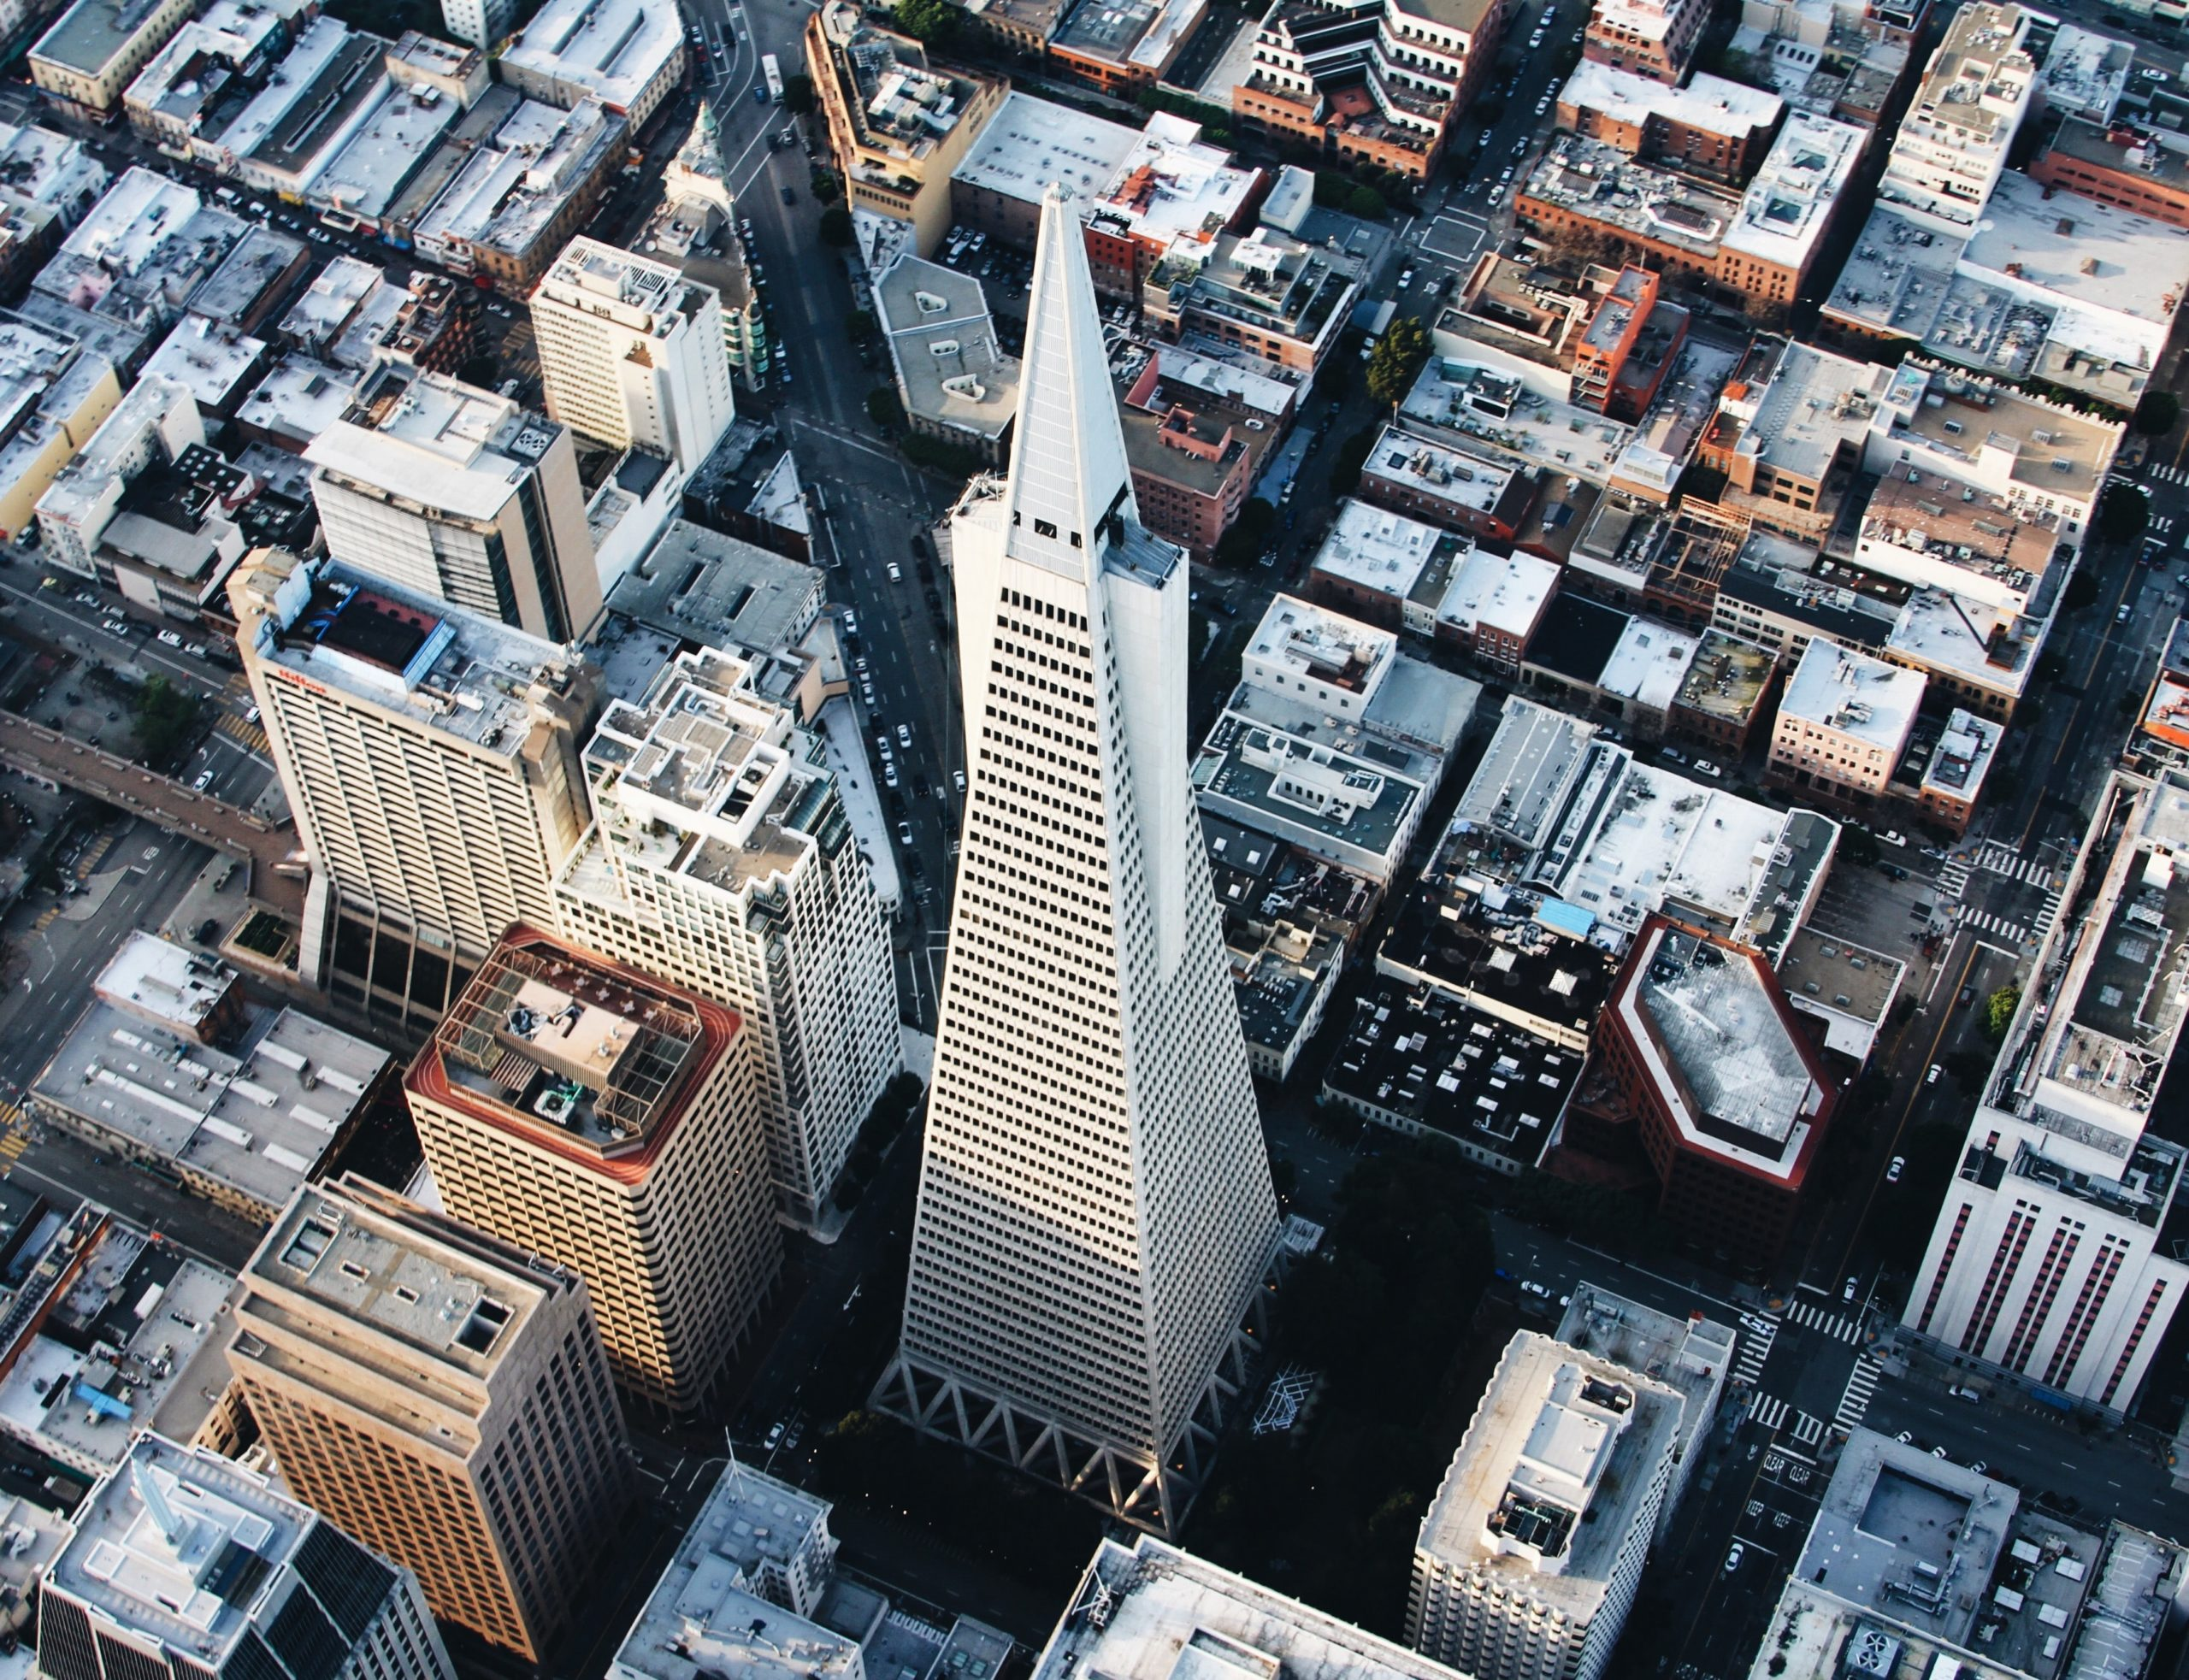 Aerial view of the Transamerica Pyramid skyscraper in San Francisco's financial district. White pointy tower in downtown.